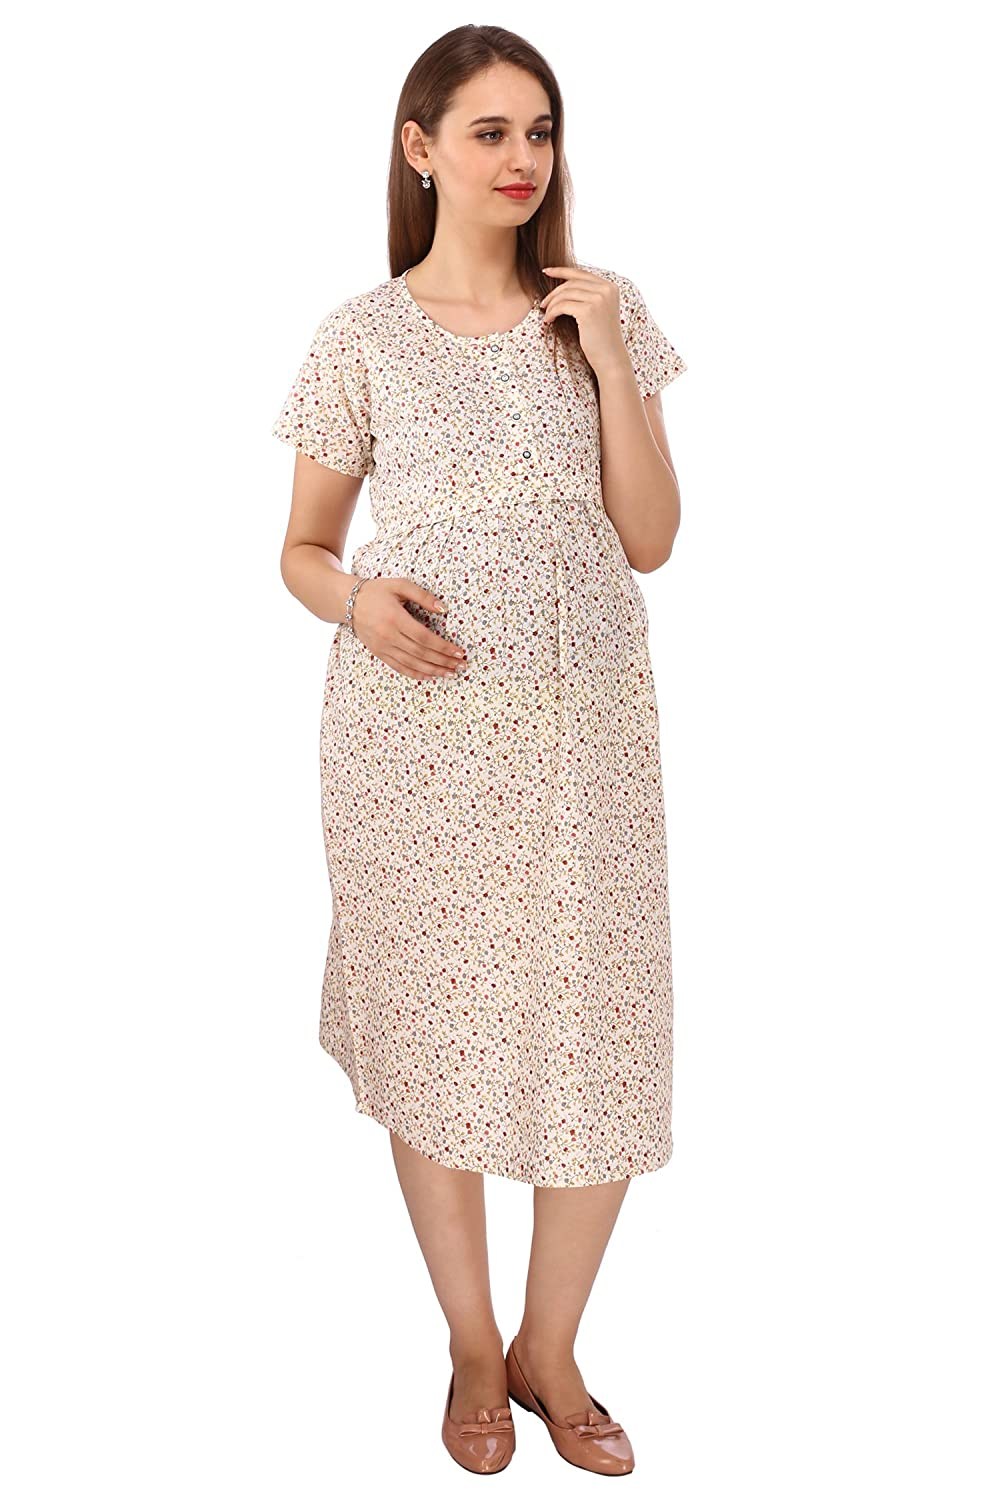 55fd7272fe310 Vixenwrap Daisy White Printed Maternity Dress: Amazon.in: Clothing &  Accessories